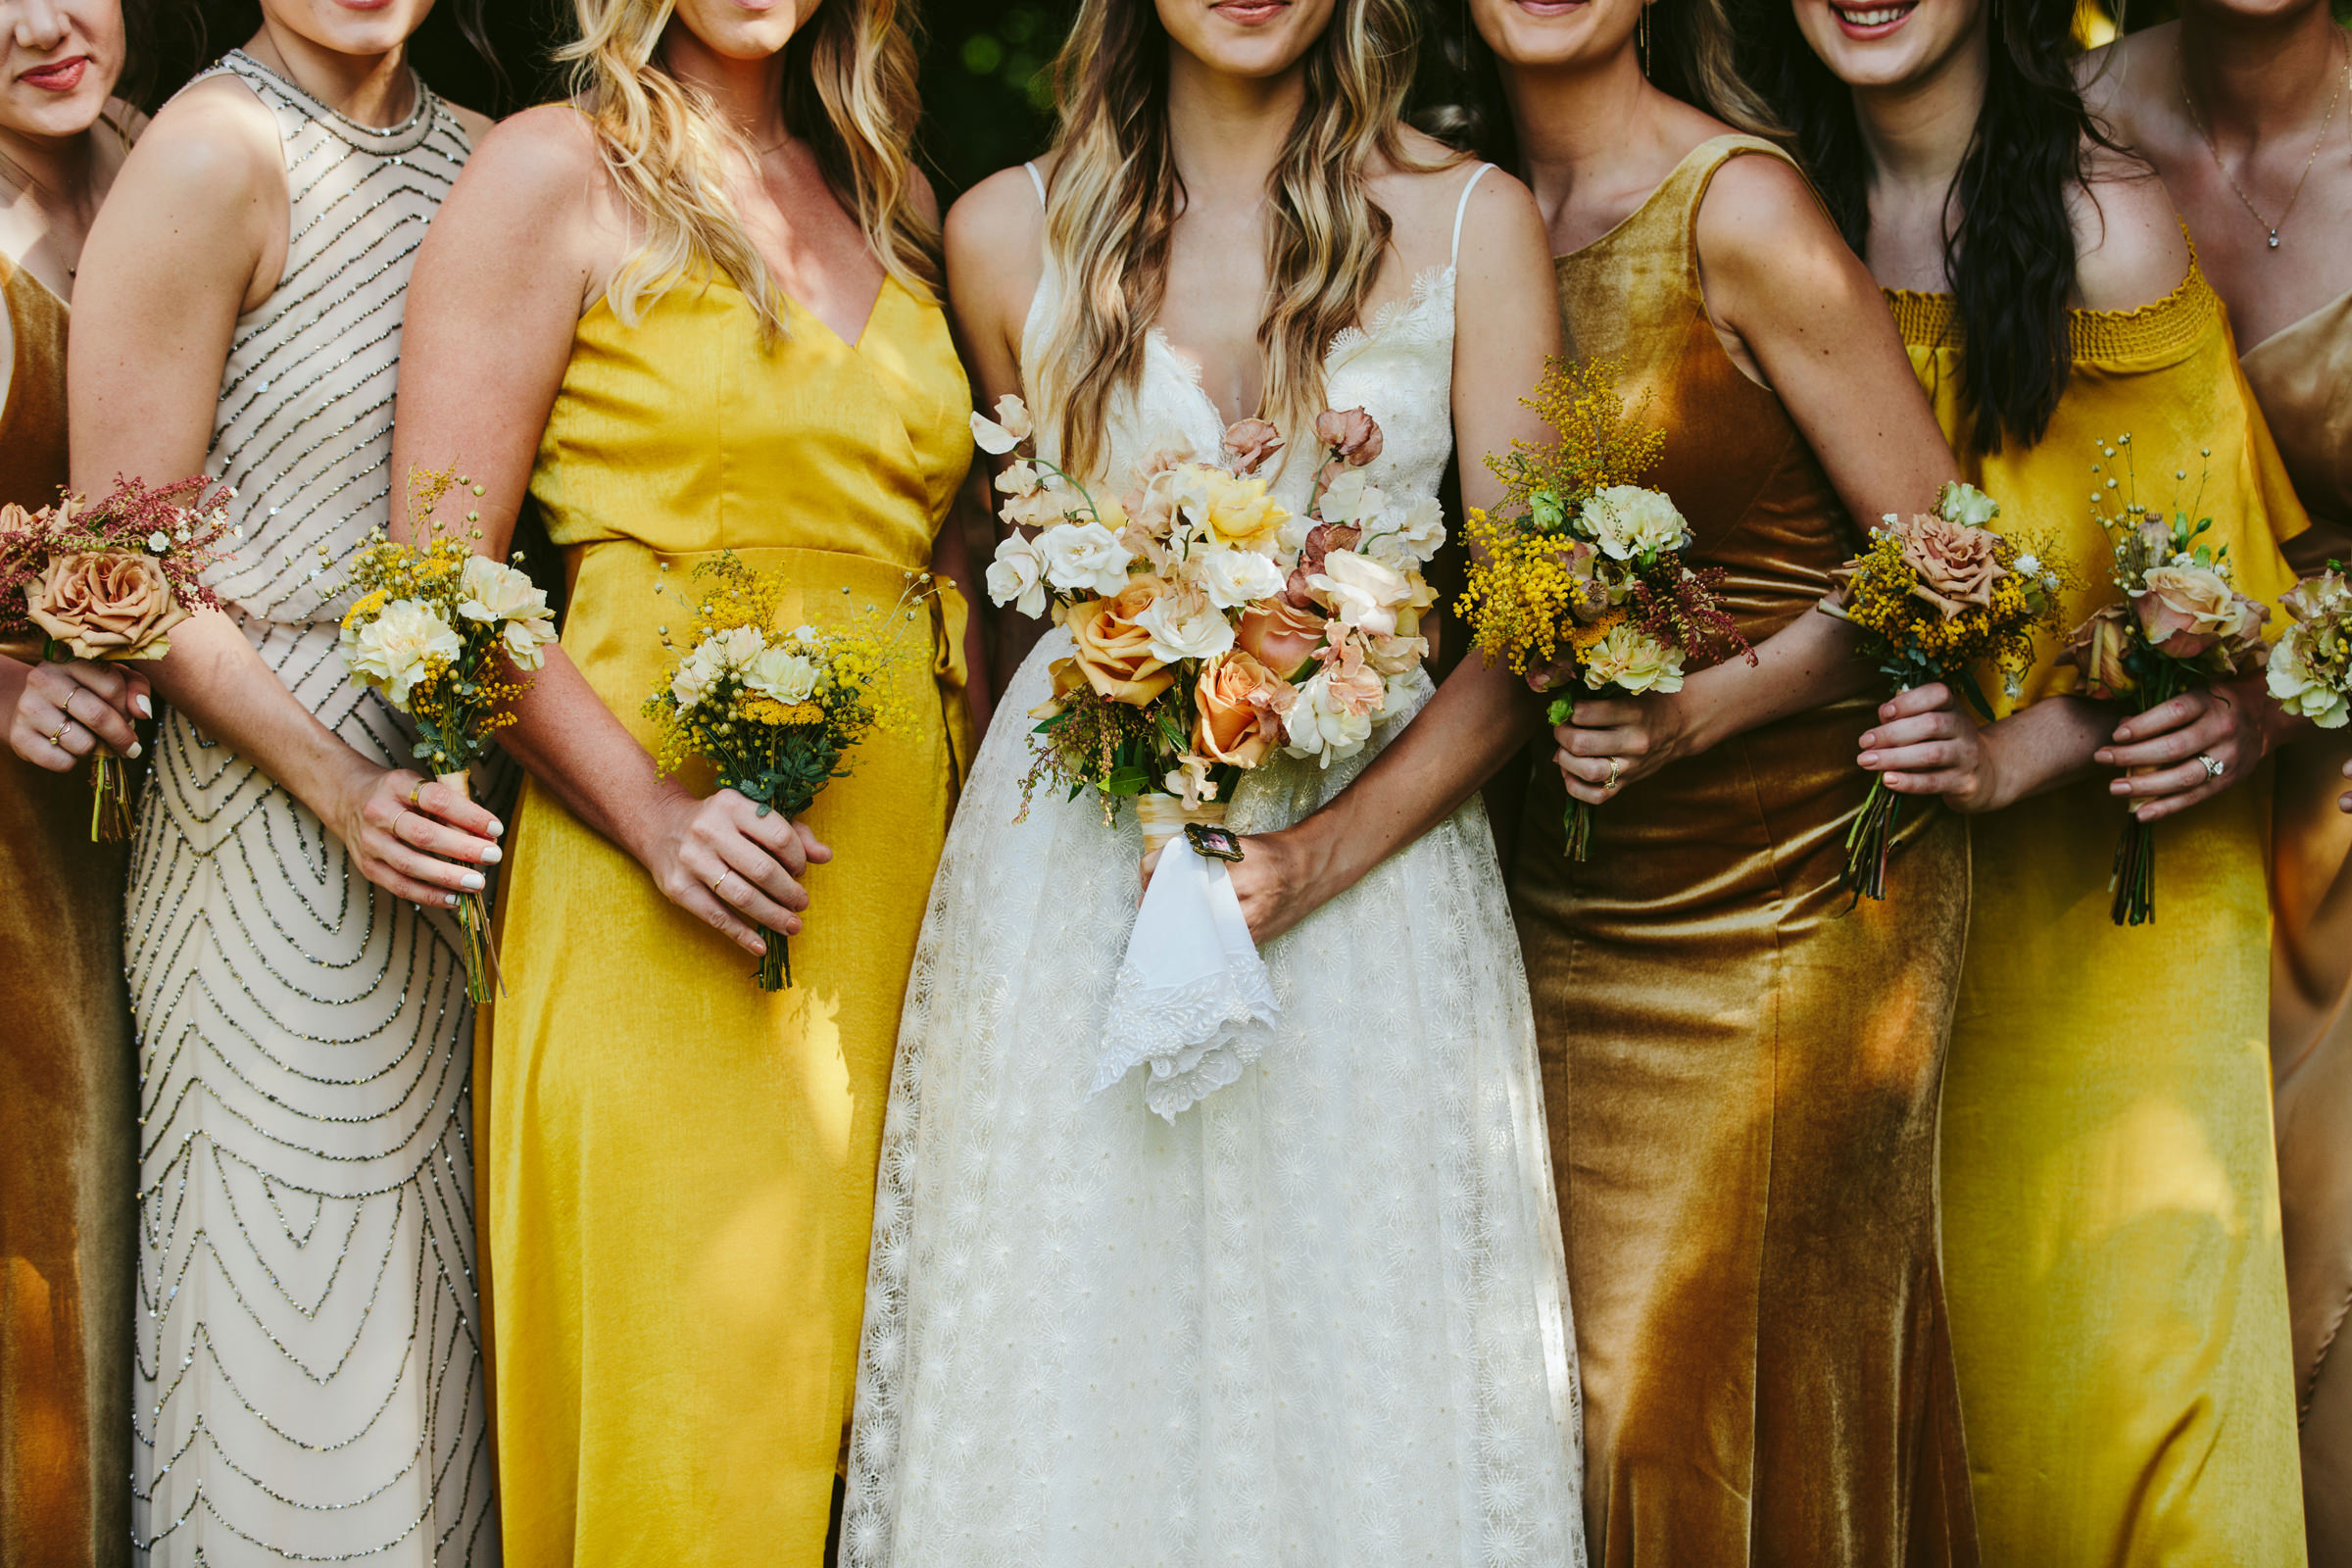 Bridal party with bouquets wearing silk bronze, yellow, and ivory dresses - photographed by Melia Lucida - Maui